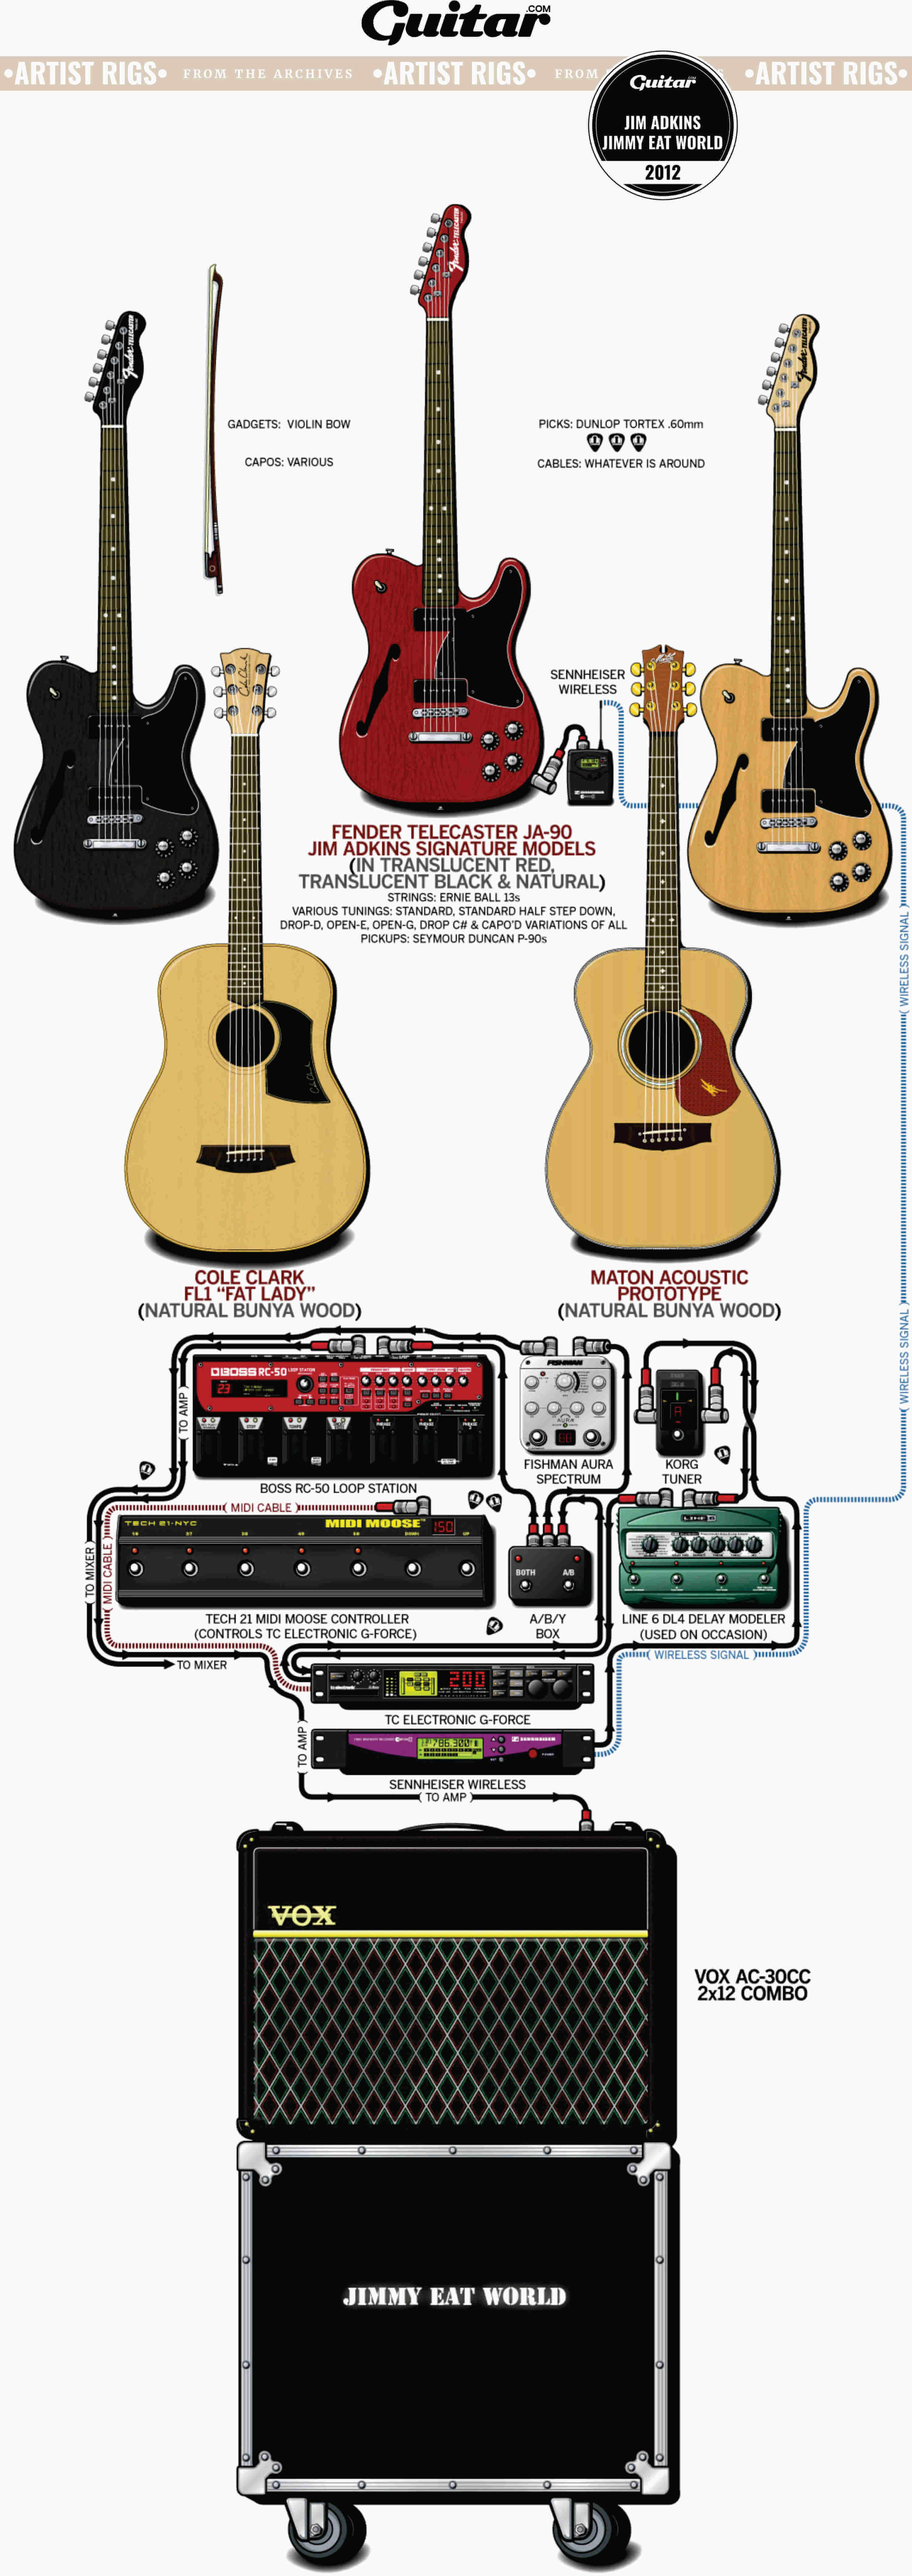 Rig Diagram: Jim Adkins, Jimmy Eat World (2012)